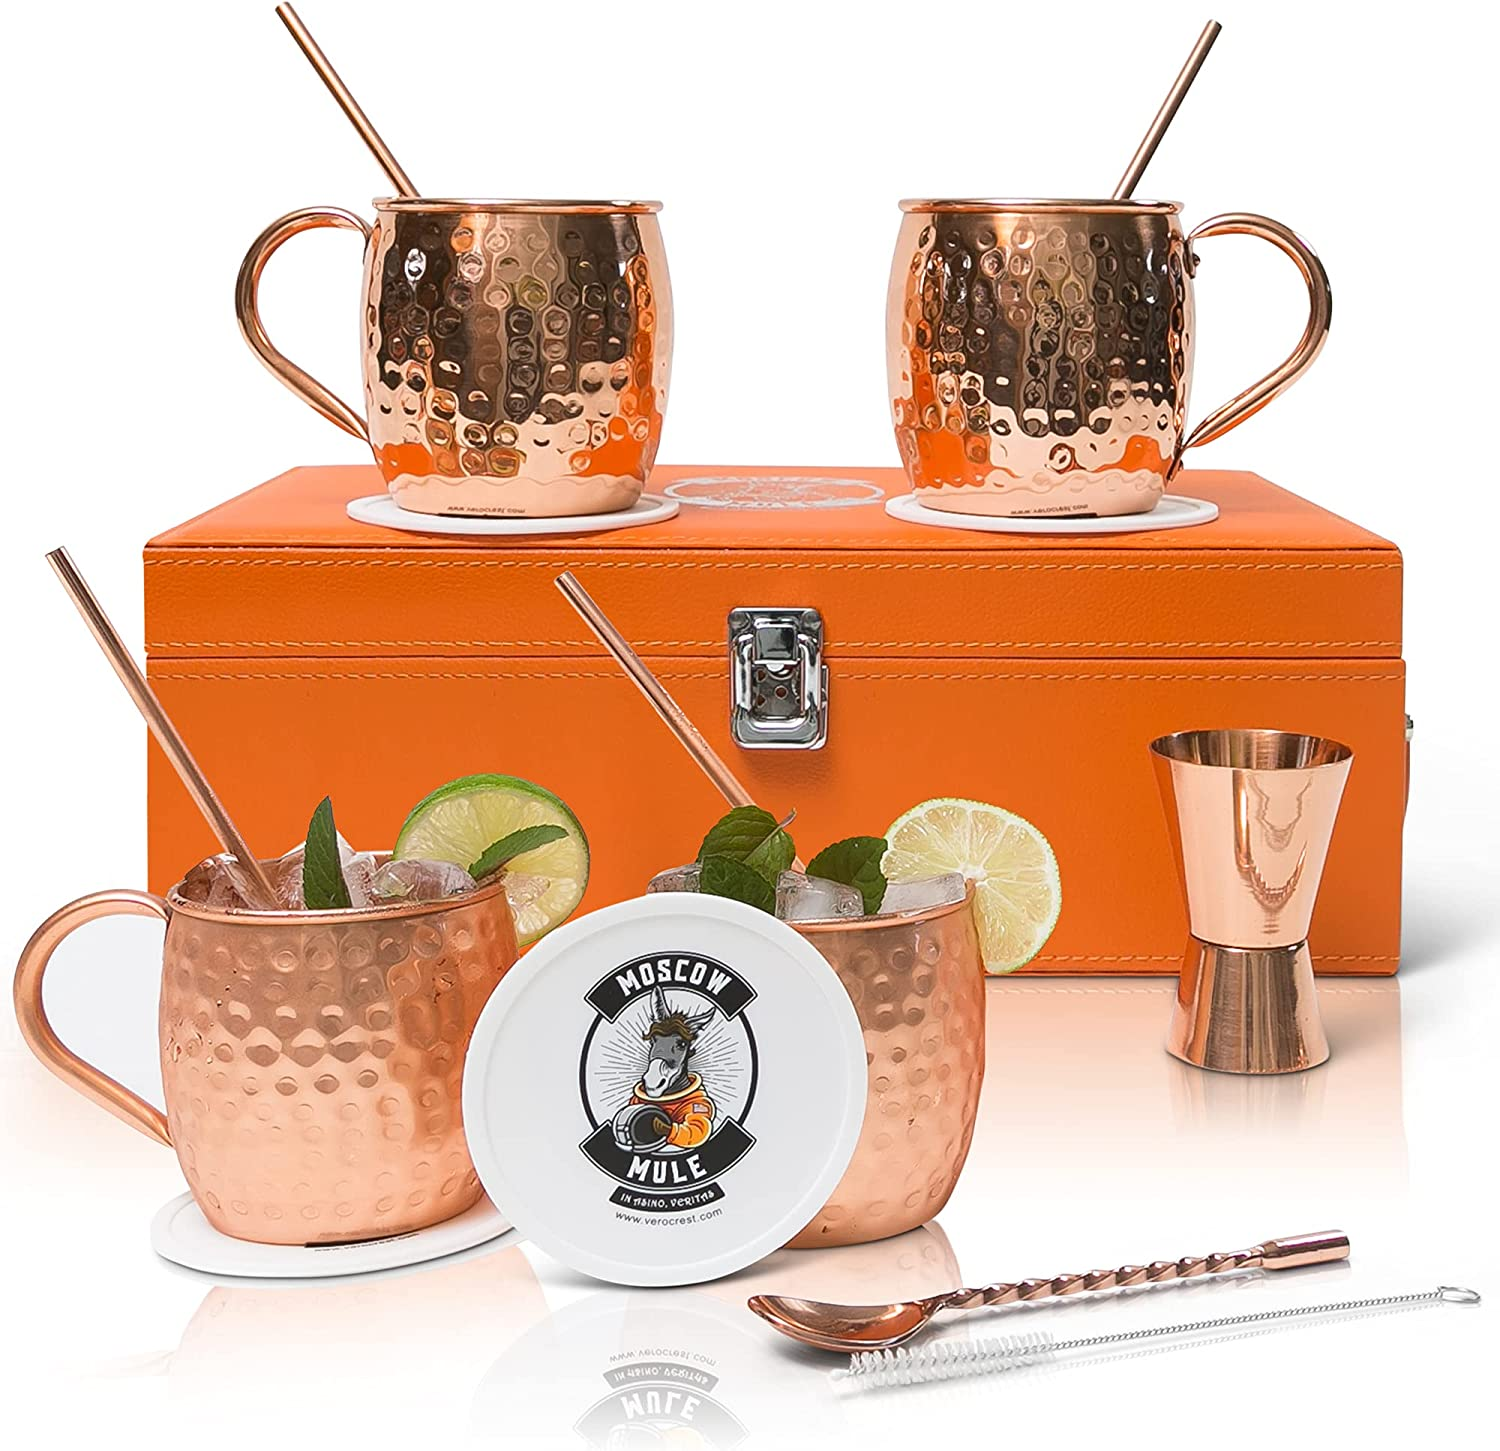 Bombing new work Vero Crest Max 62% OFF Copper Moscow Mule Cups Handcrafted of Set 4 -